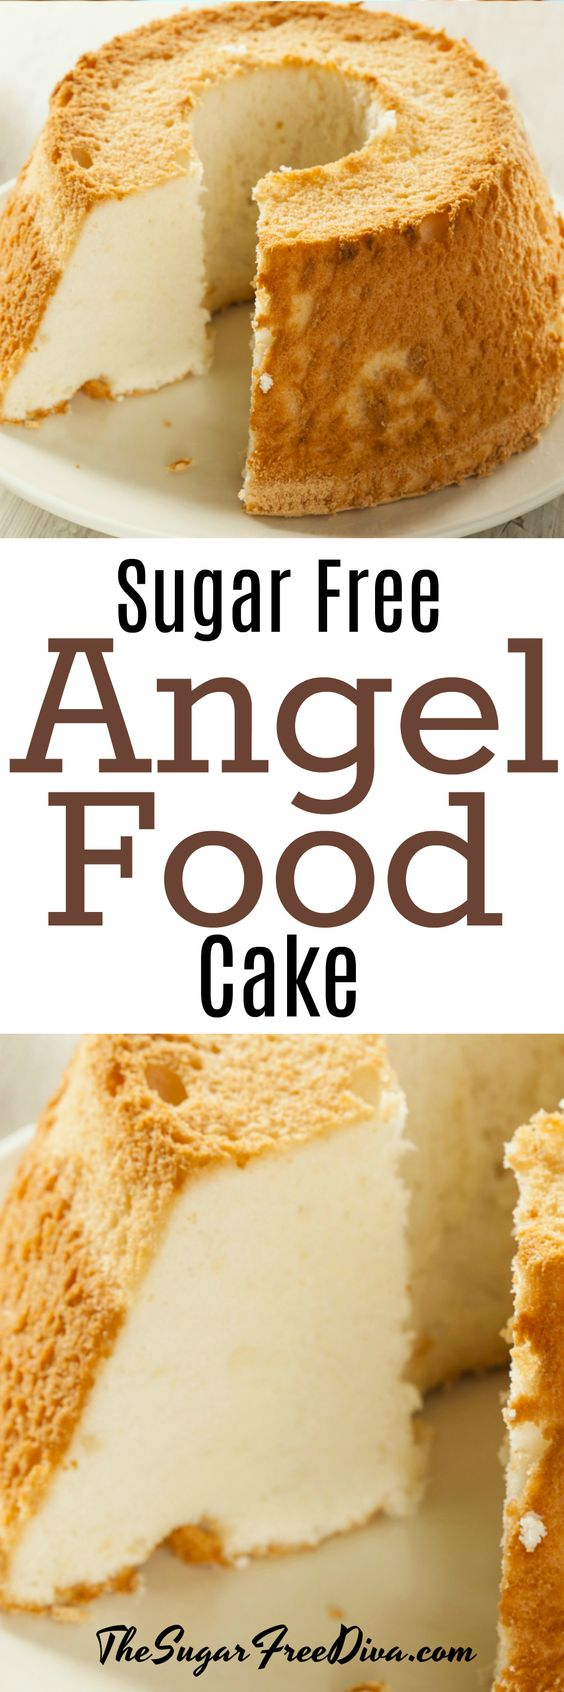 This Sugar Free Angel Food Cake recipe is a pretty standard recipe.